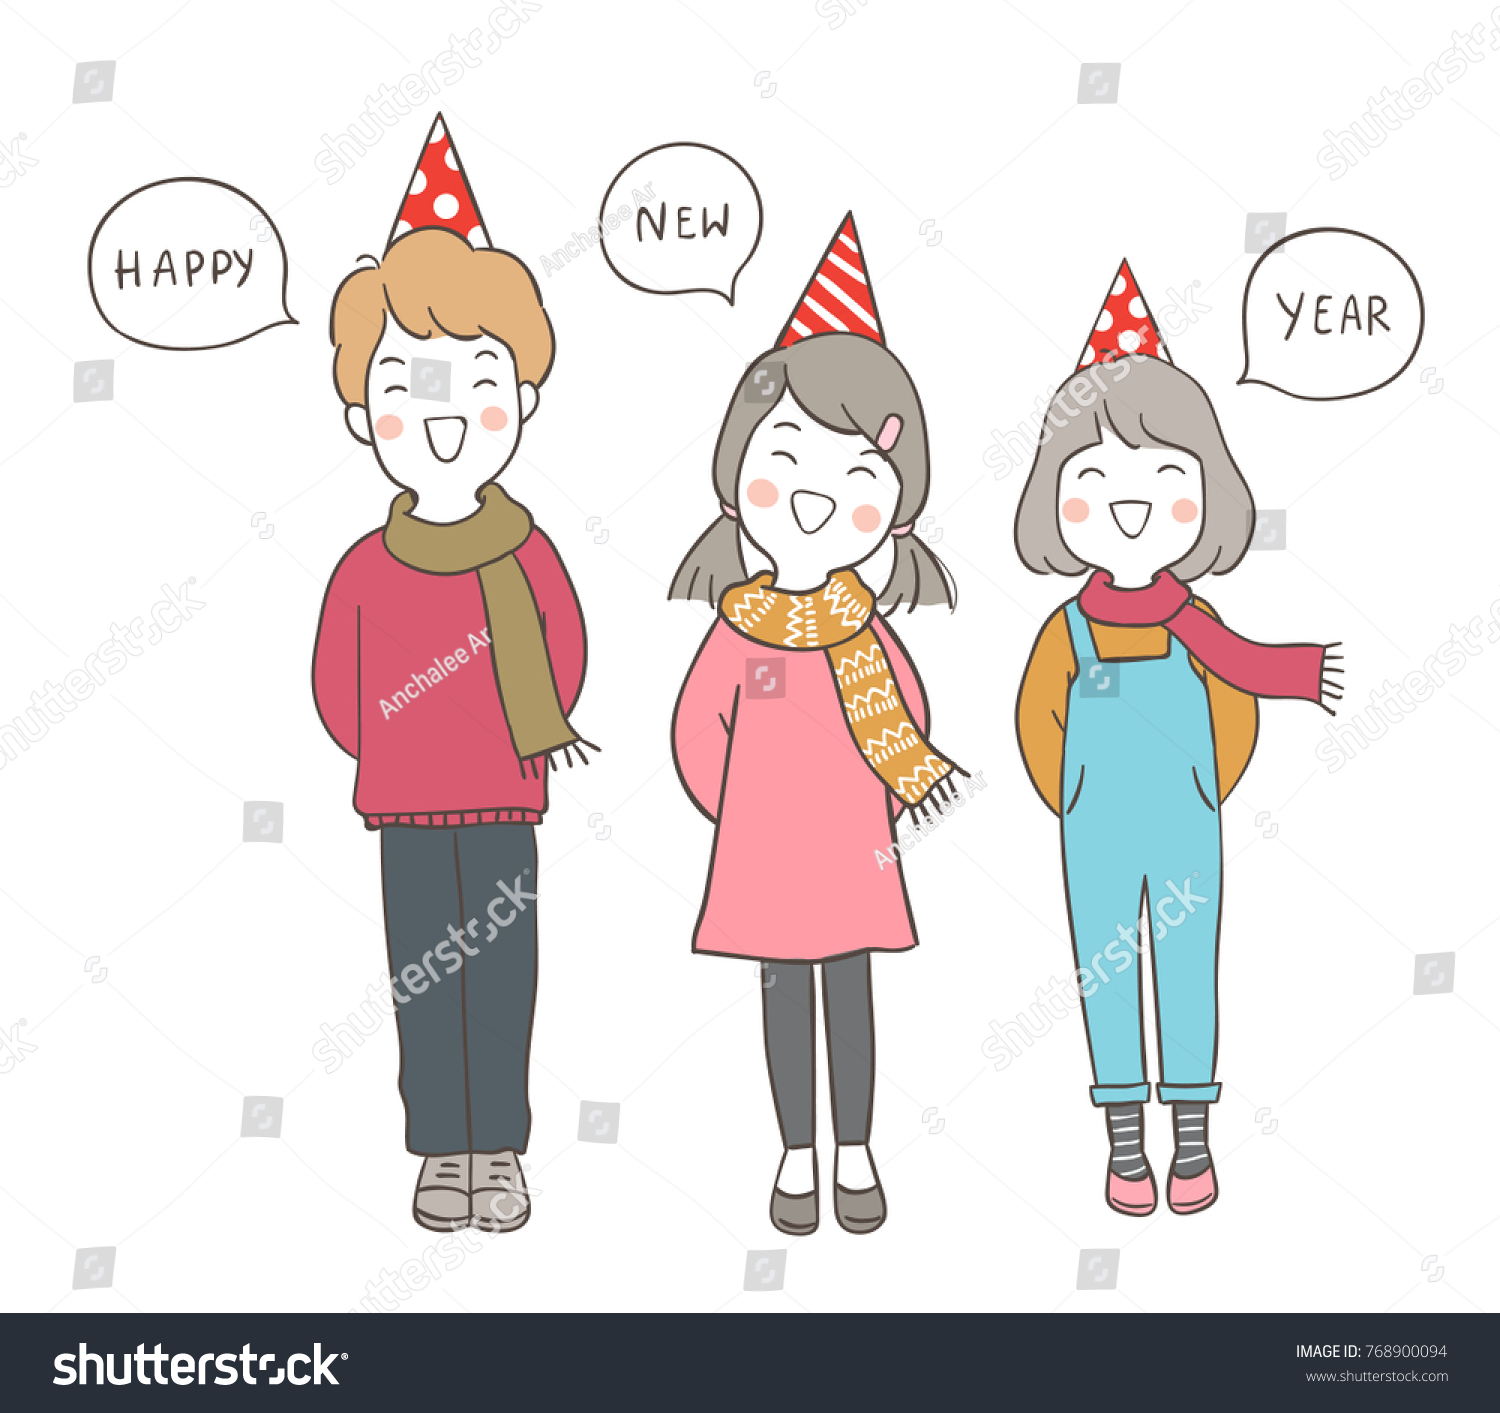 cute draw vector illustration character design happy kids saying happy new year in speech bubble